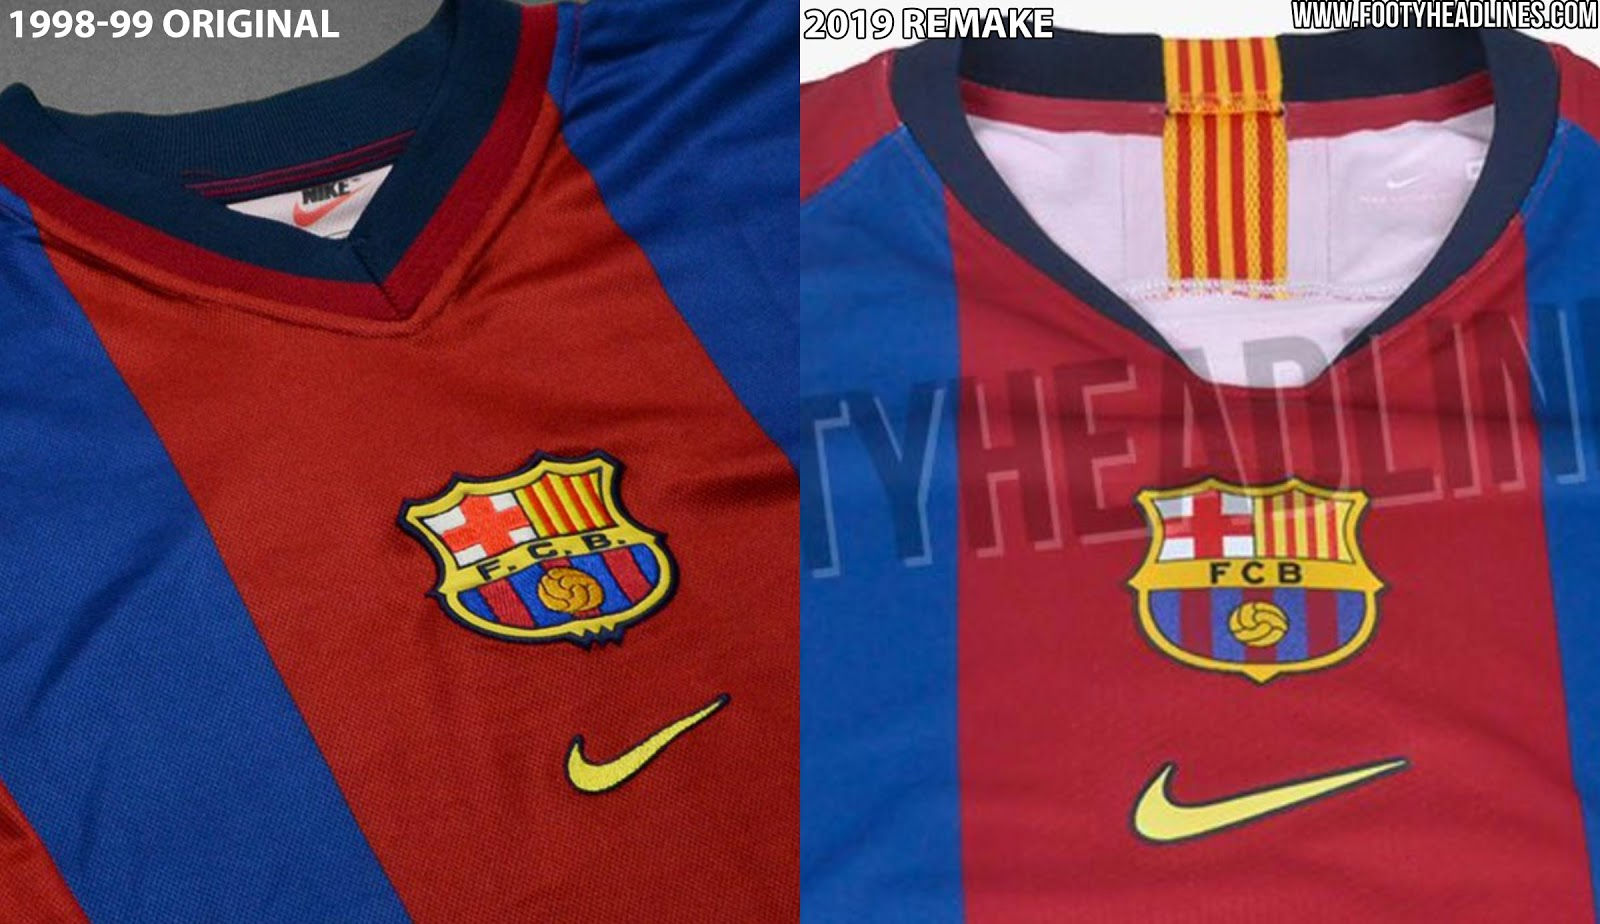 ffdac75b The second remarkable difference is the Barca logo - the classic comes with  the 1998-99 one, while the remake features the current Barca crest.